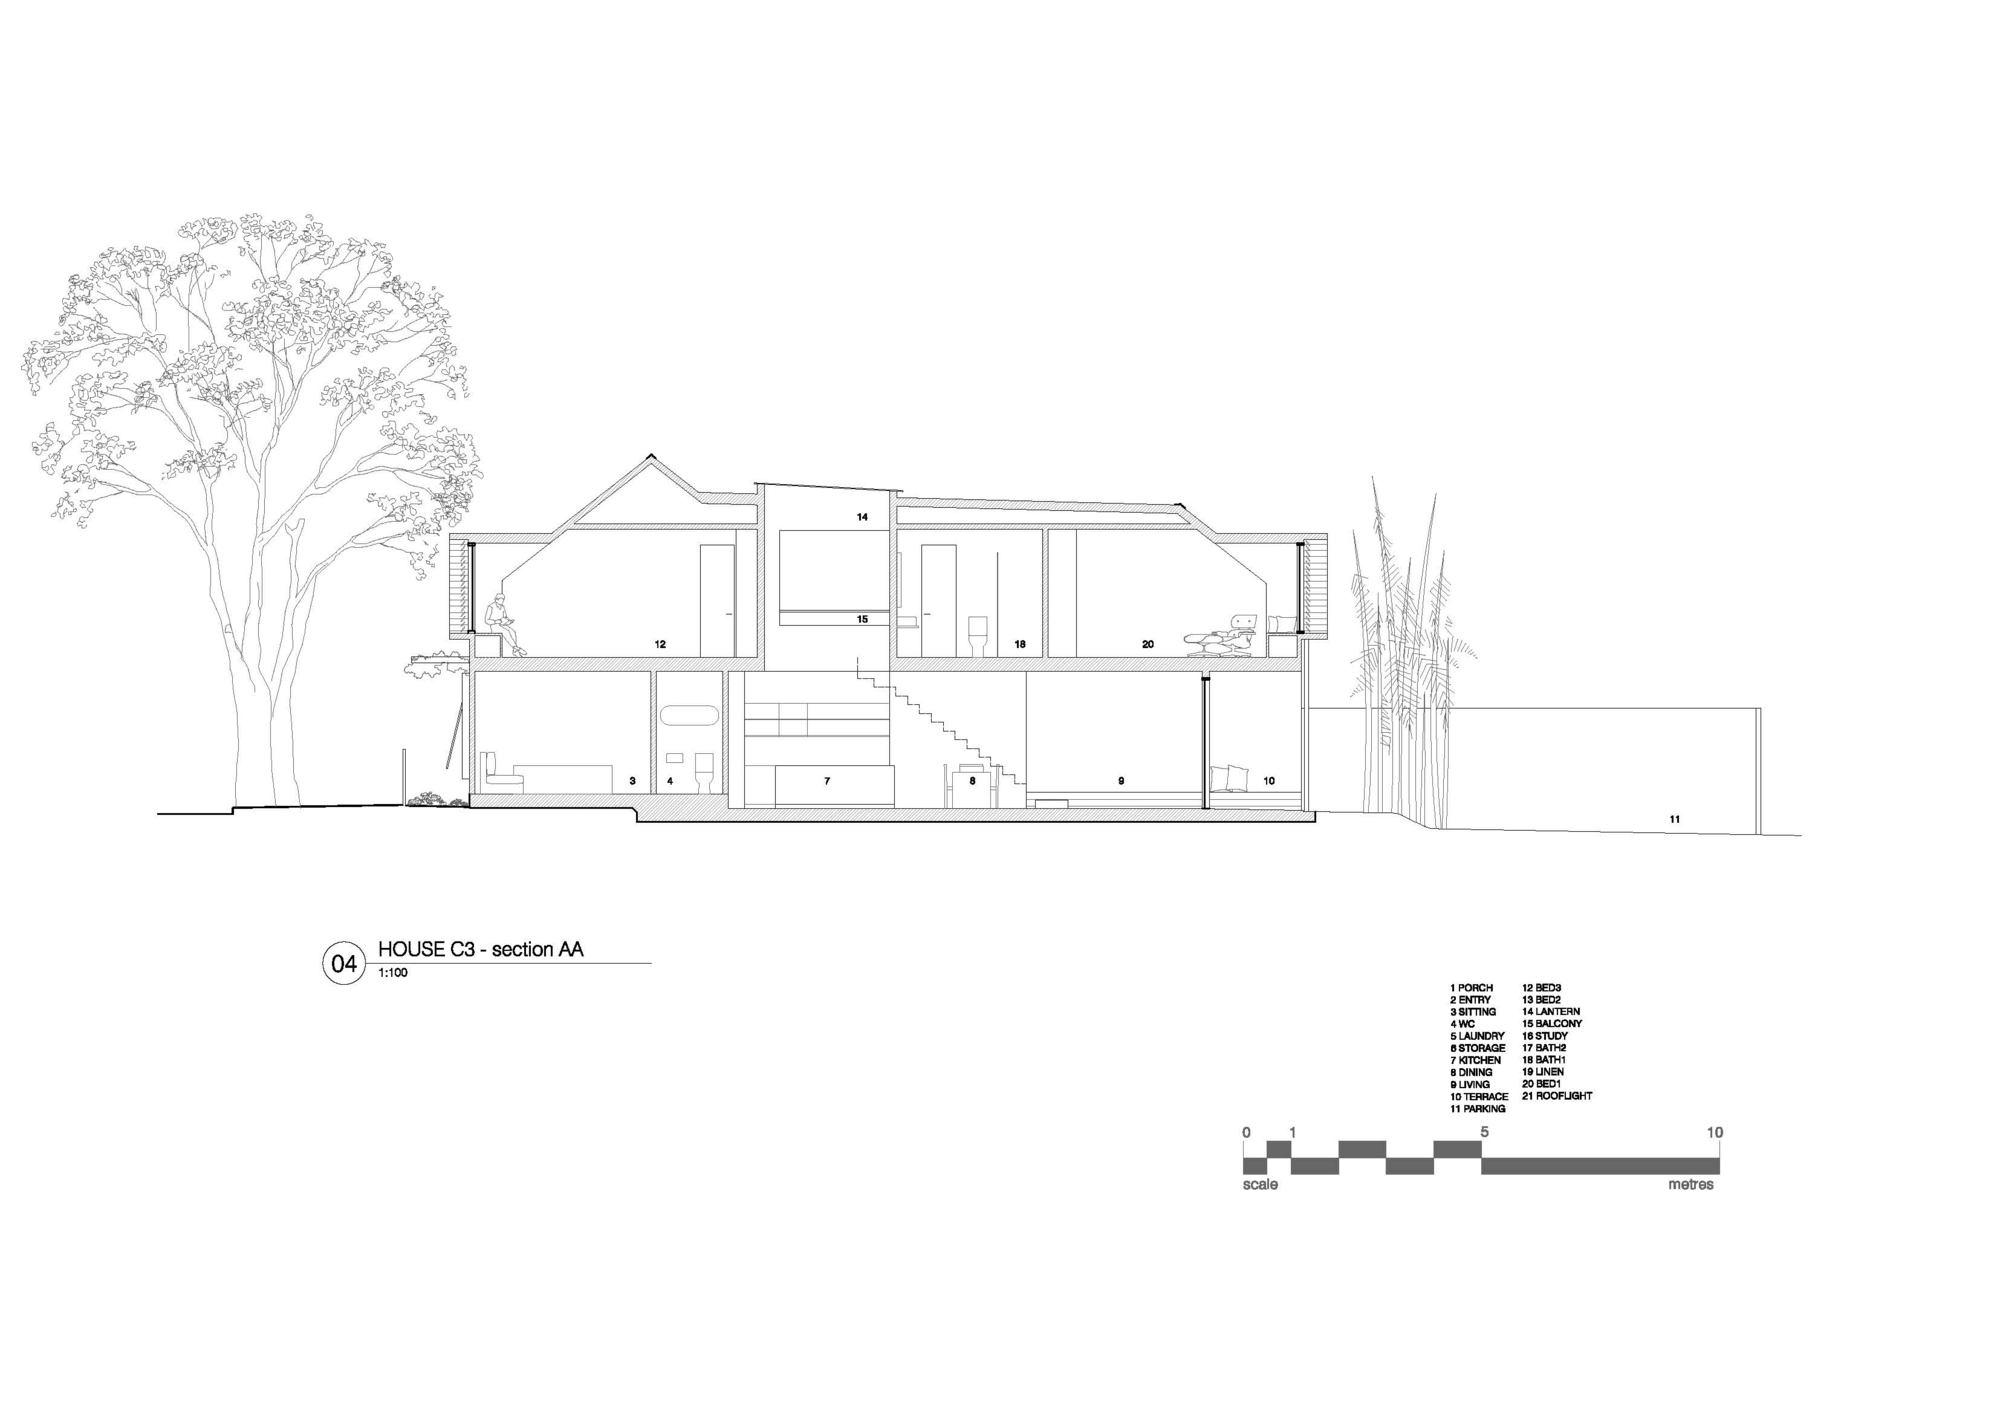 House C3 by Campbell Architecture (via Lunchbox Architect)